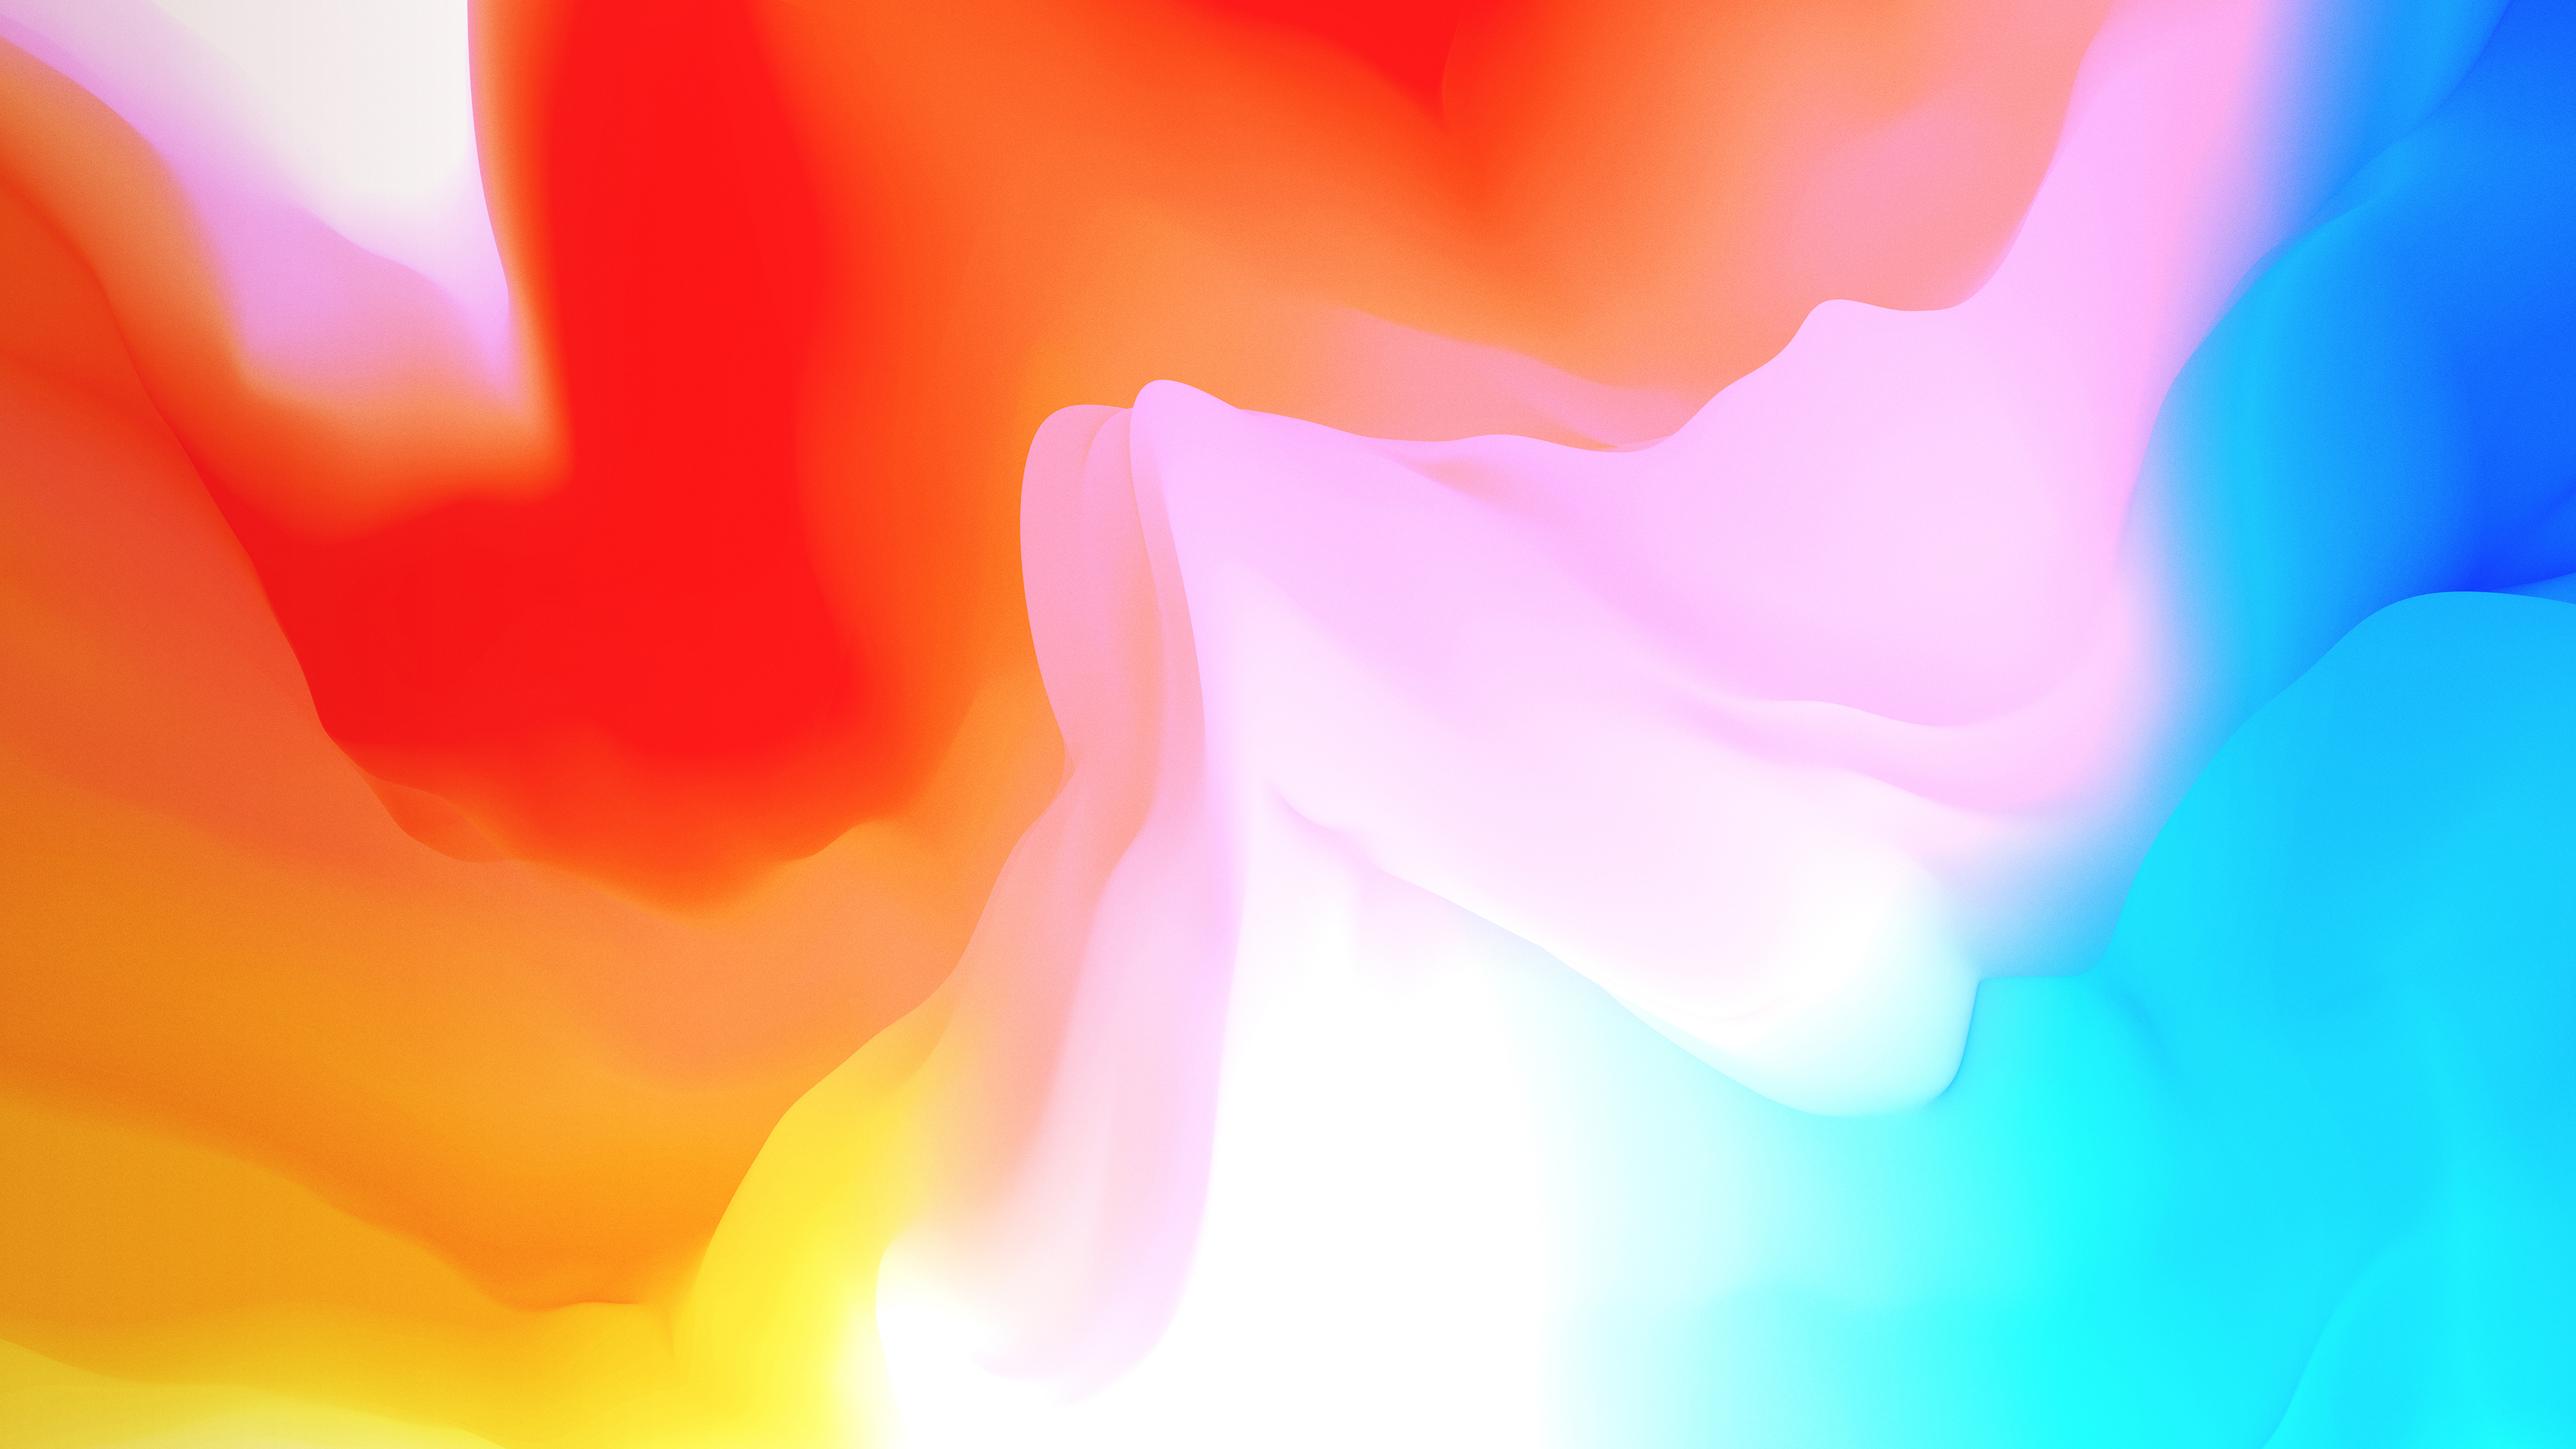 Abstract, Colorful, Oneplus 6, Stock, Wallpaper - Abstract Color Wallpaper 4k - HD Wallpaper